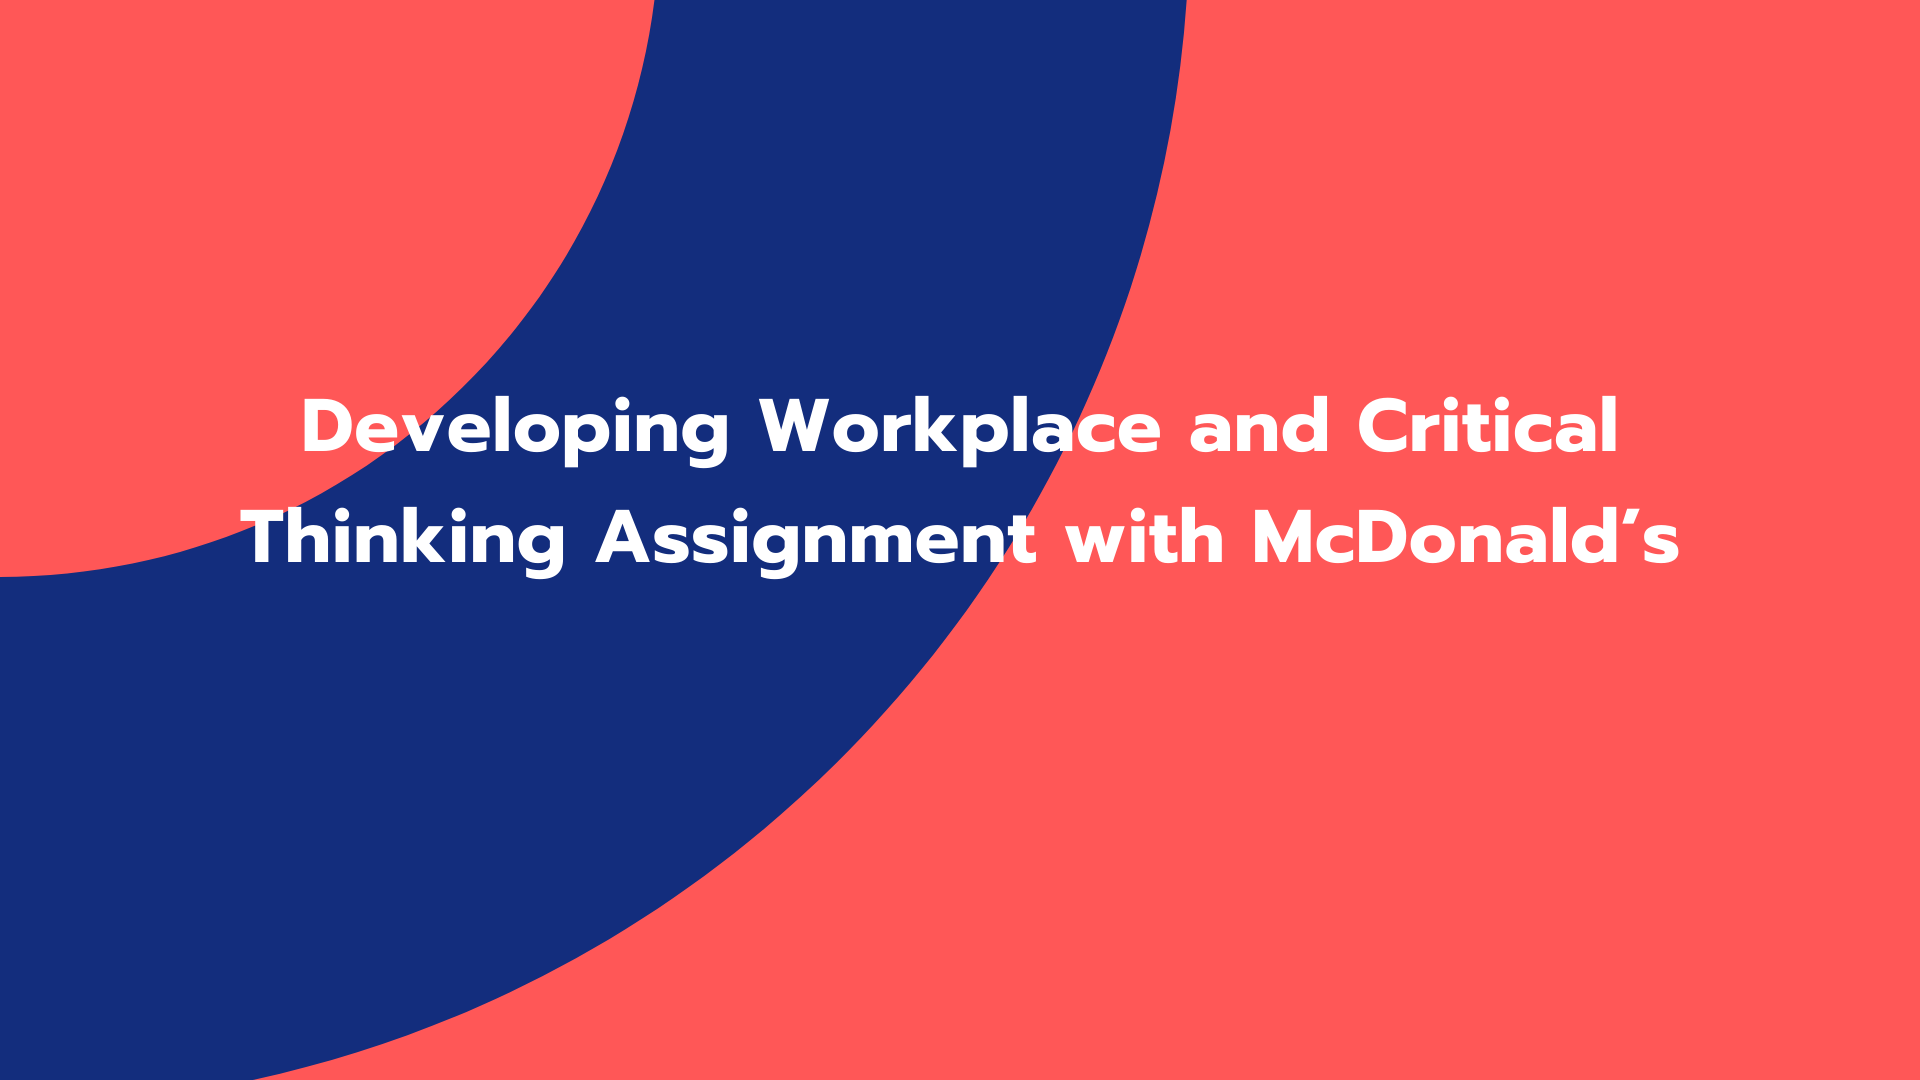 Developing Workplace and Critical Thinking Assignment with McDonald's